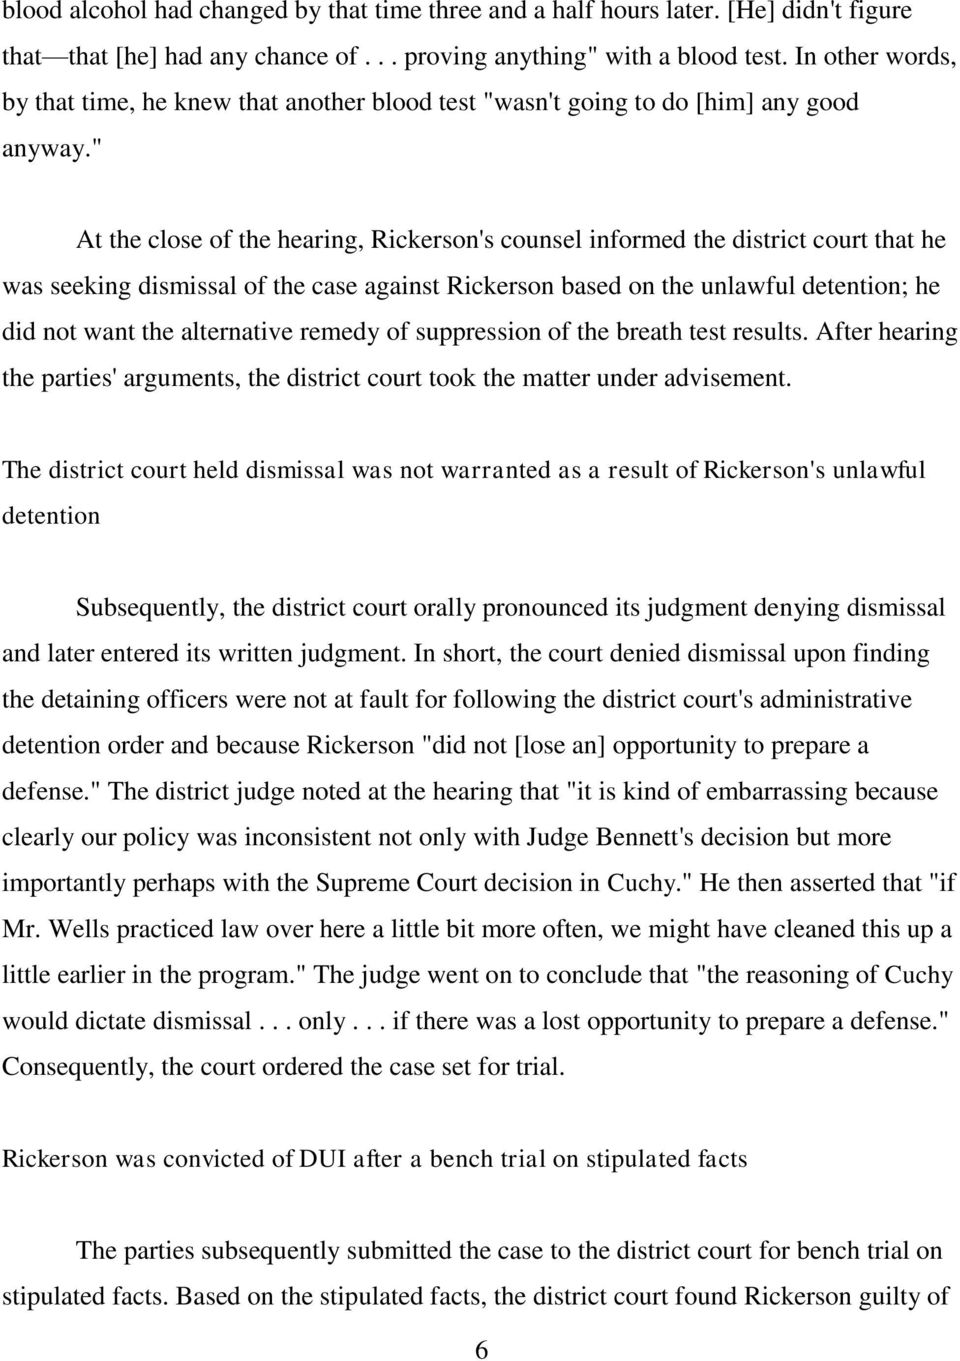 """ At the close of the hearing, Rickerson's counsel informed the district court that he was seeking dismissal of the case against Rickerson based on the unlawful detention; he did not want the"